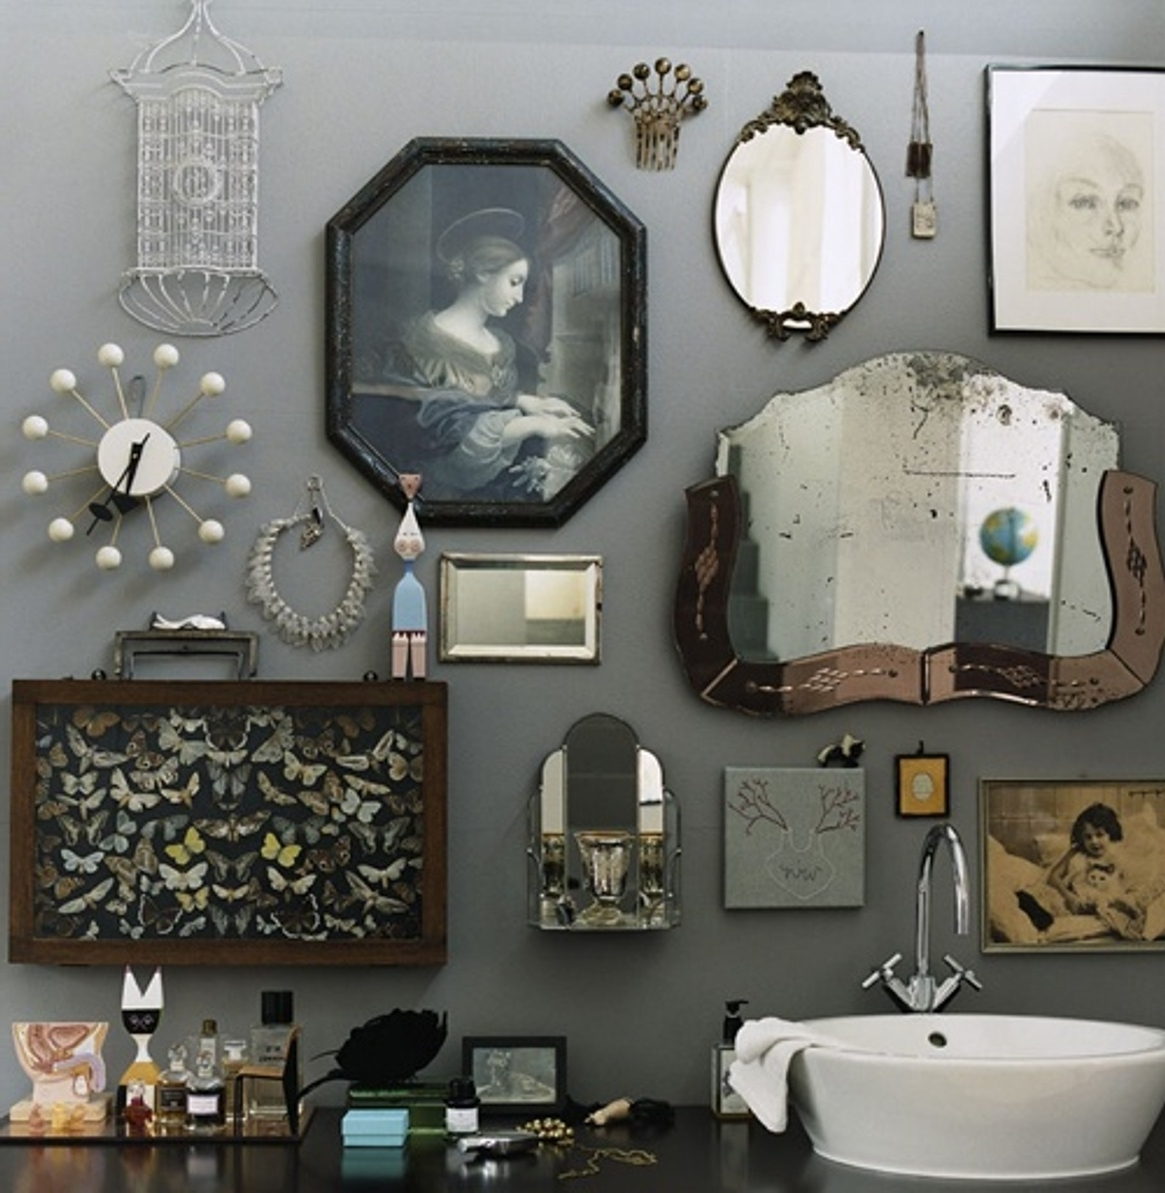 Charming Bathroom Wall Decor Inspirations — The Home Redesign In Well Known Wall Accents For Bathrooms (Gallery 5 of 15)